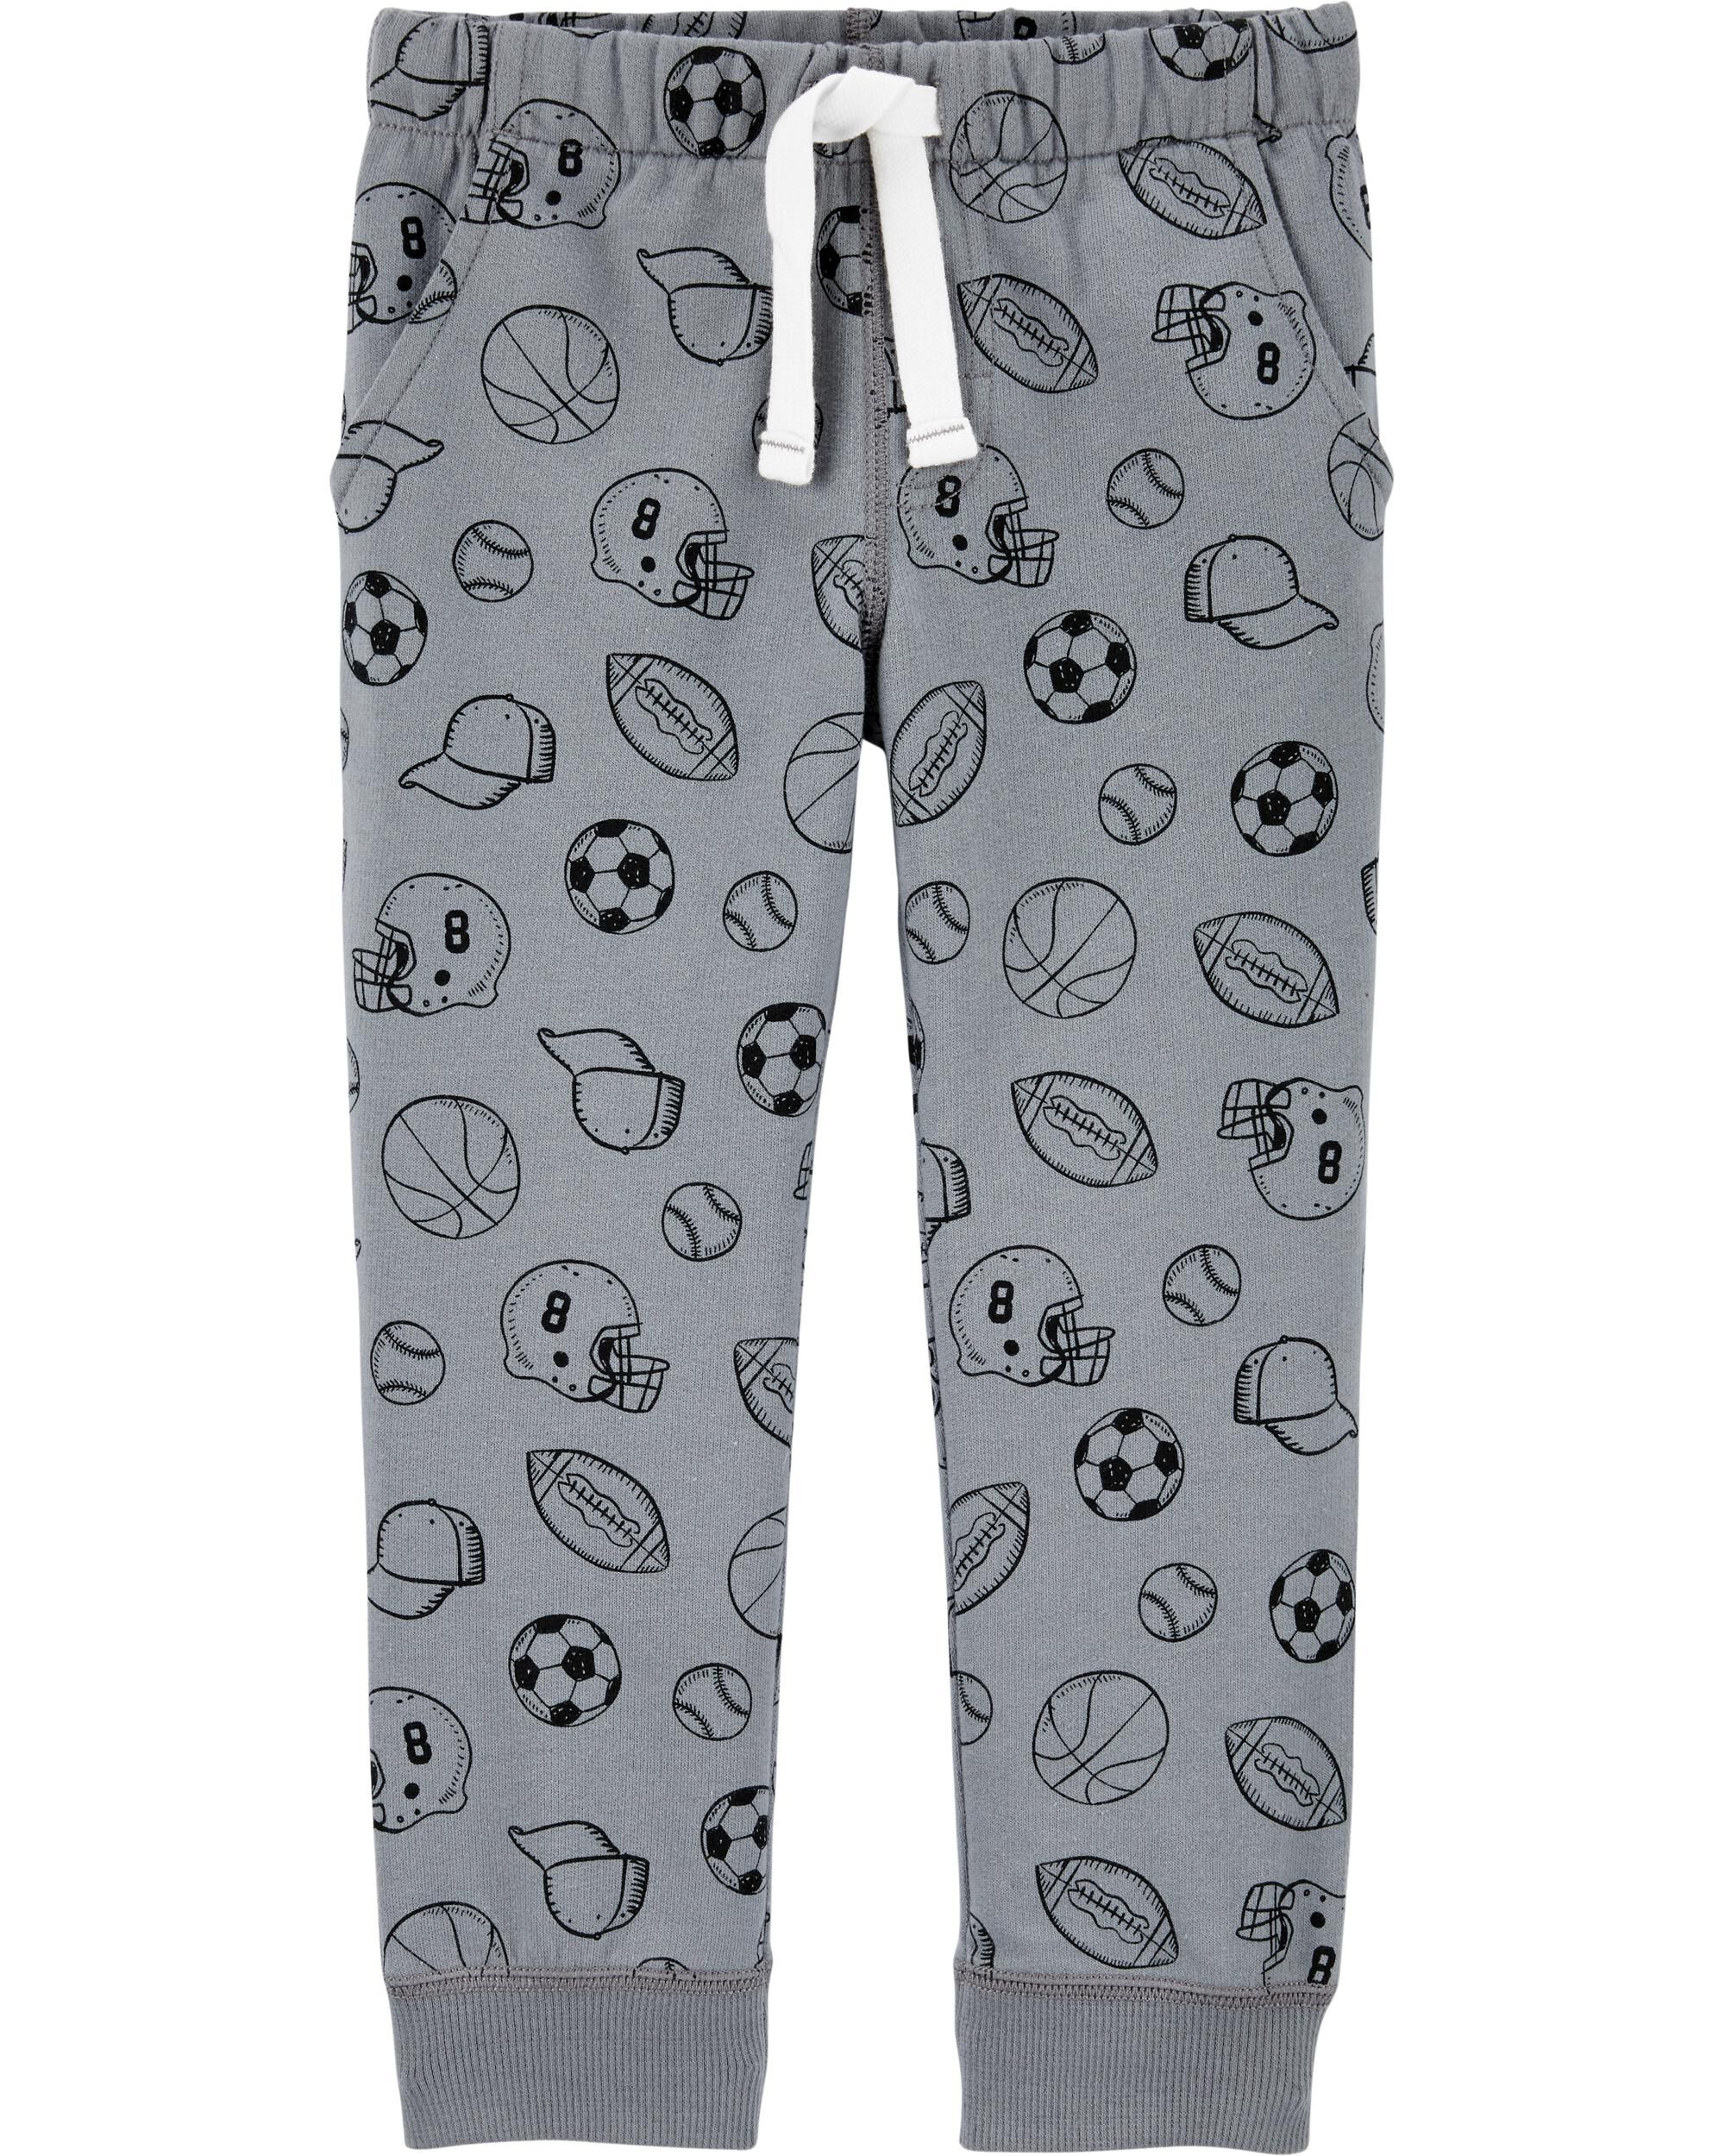 *DOORBUSTER* Sports Pull-On French Terry Joggers